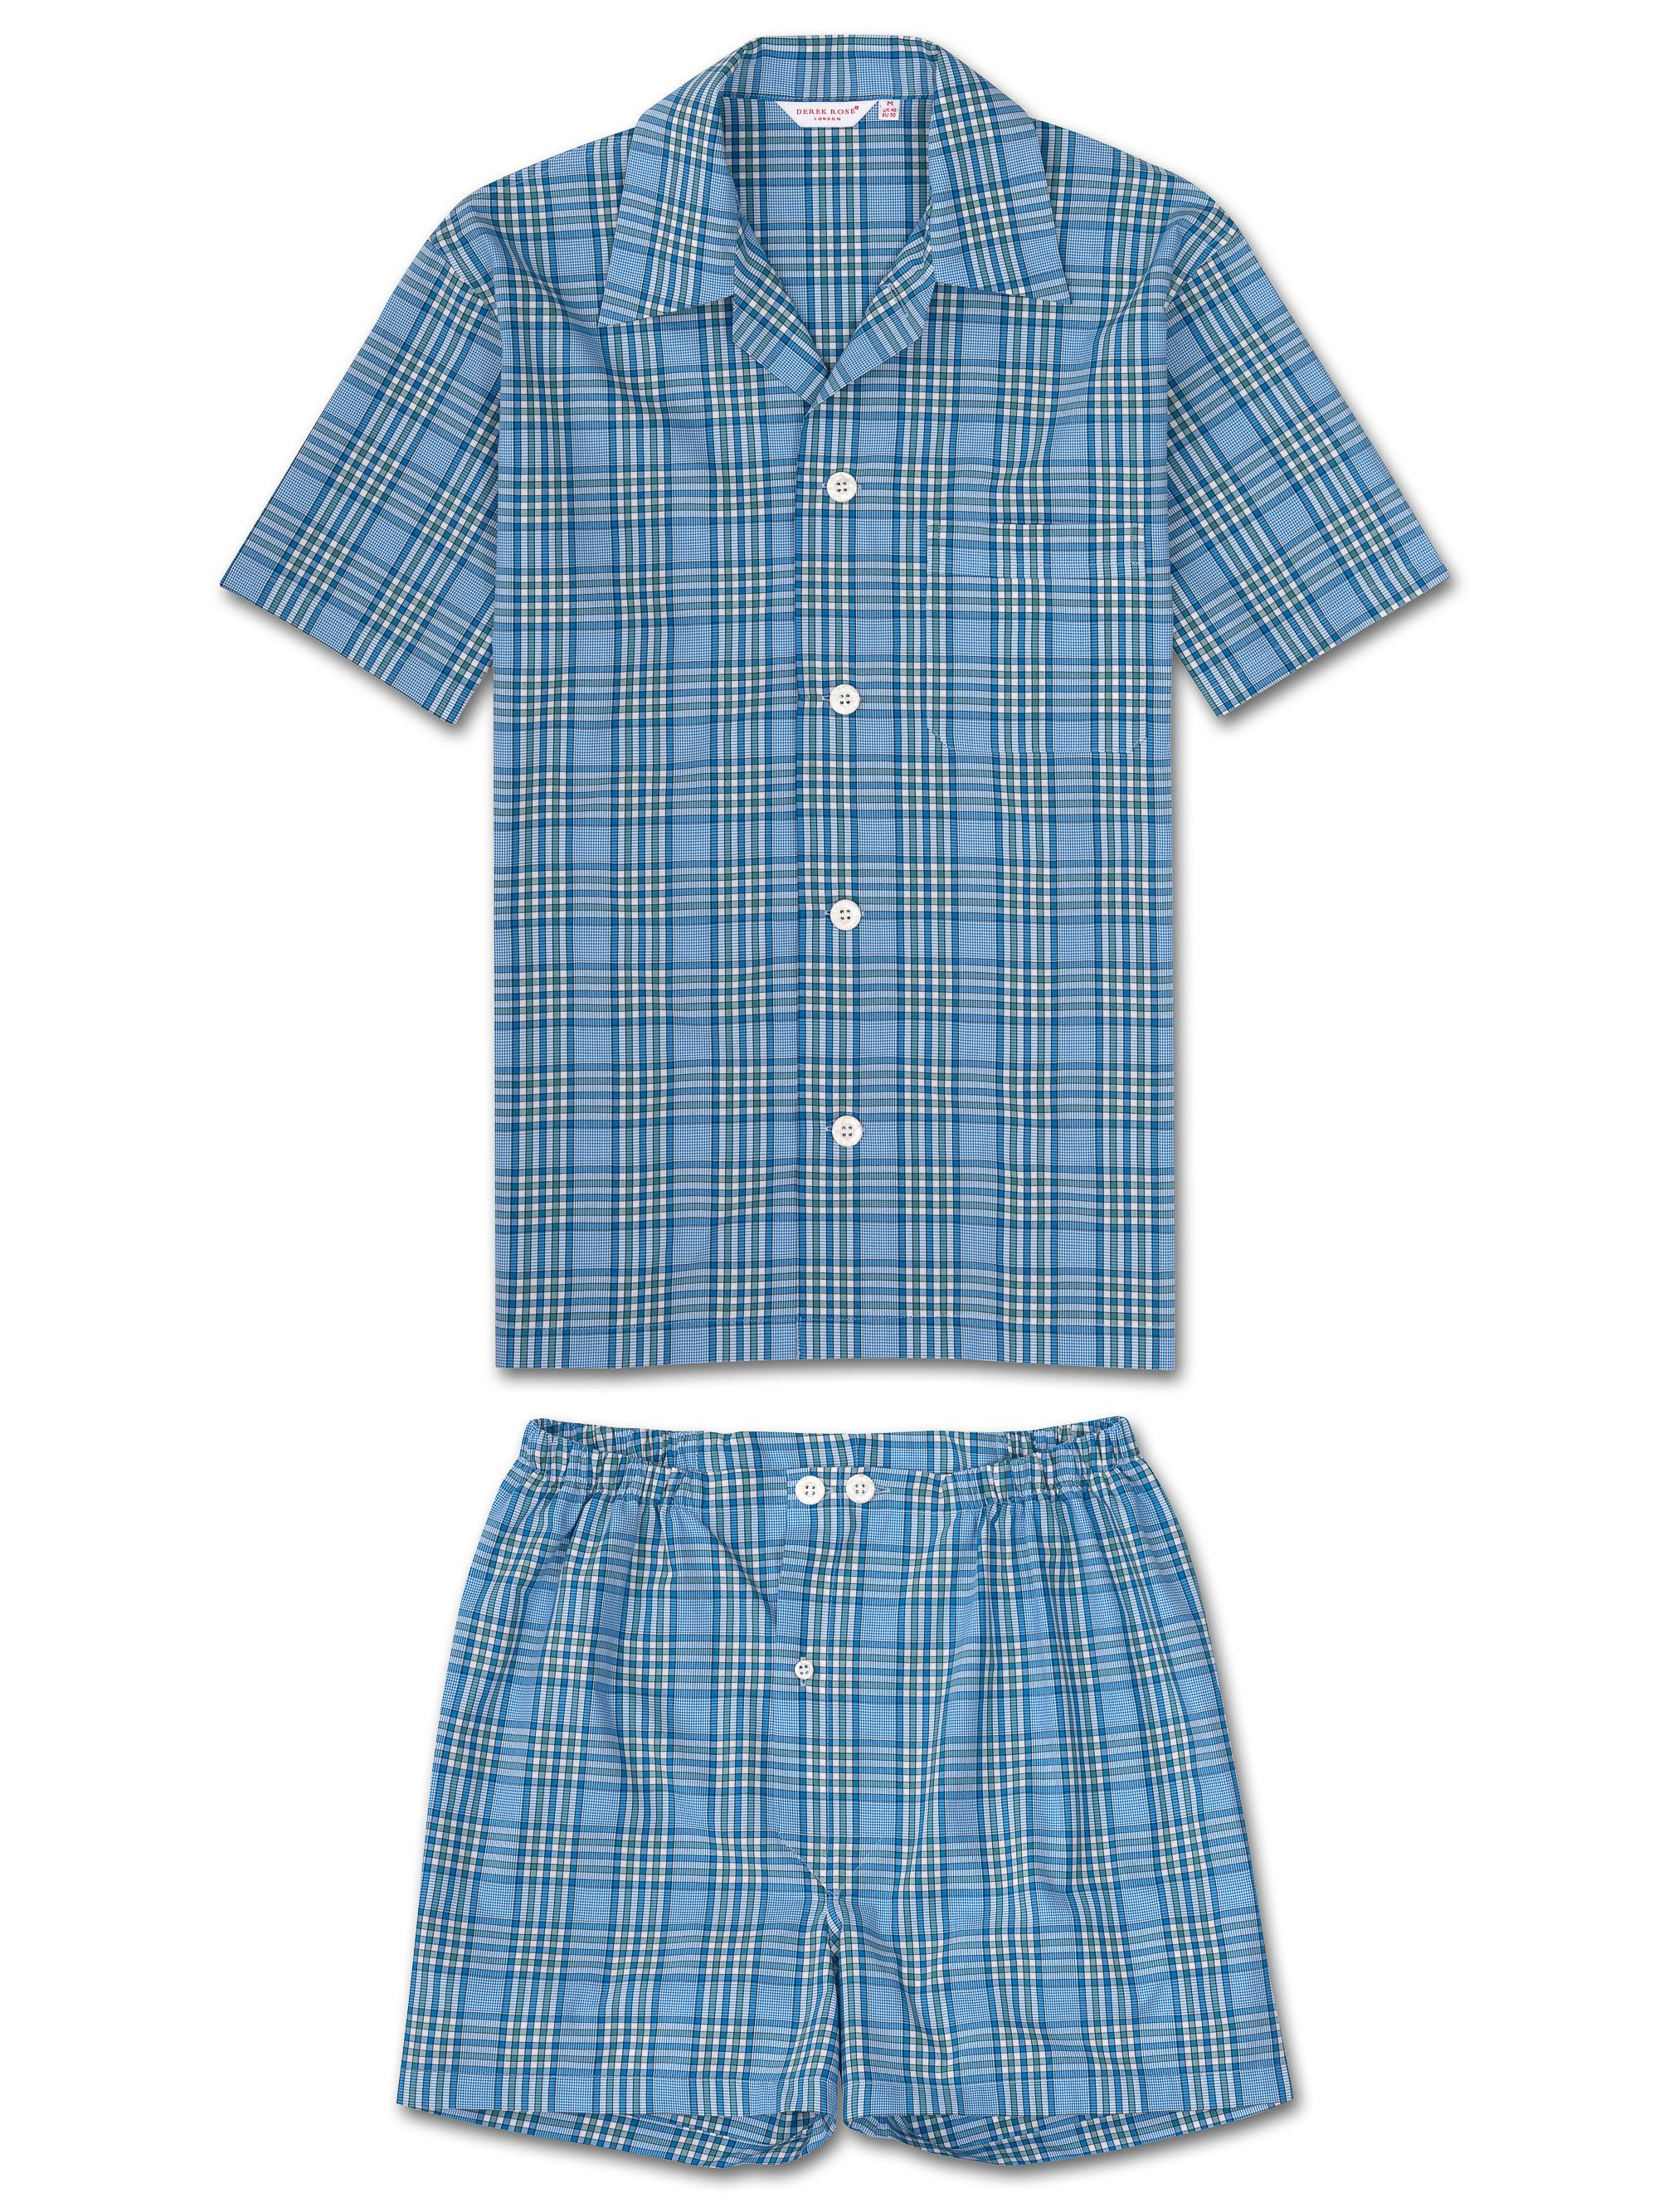 Men's Short Pyjamas Barker 7 Cotton Check Blue